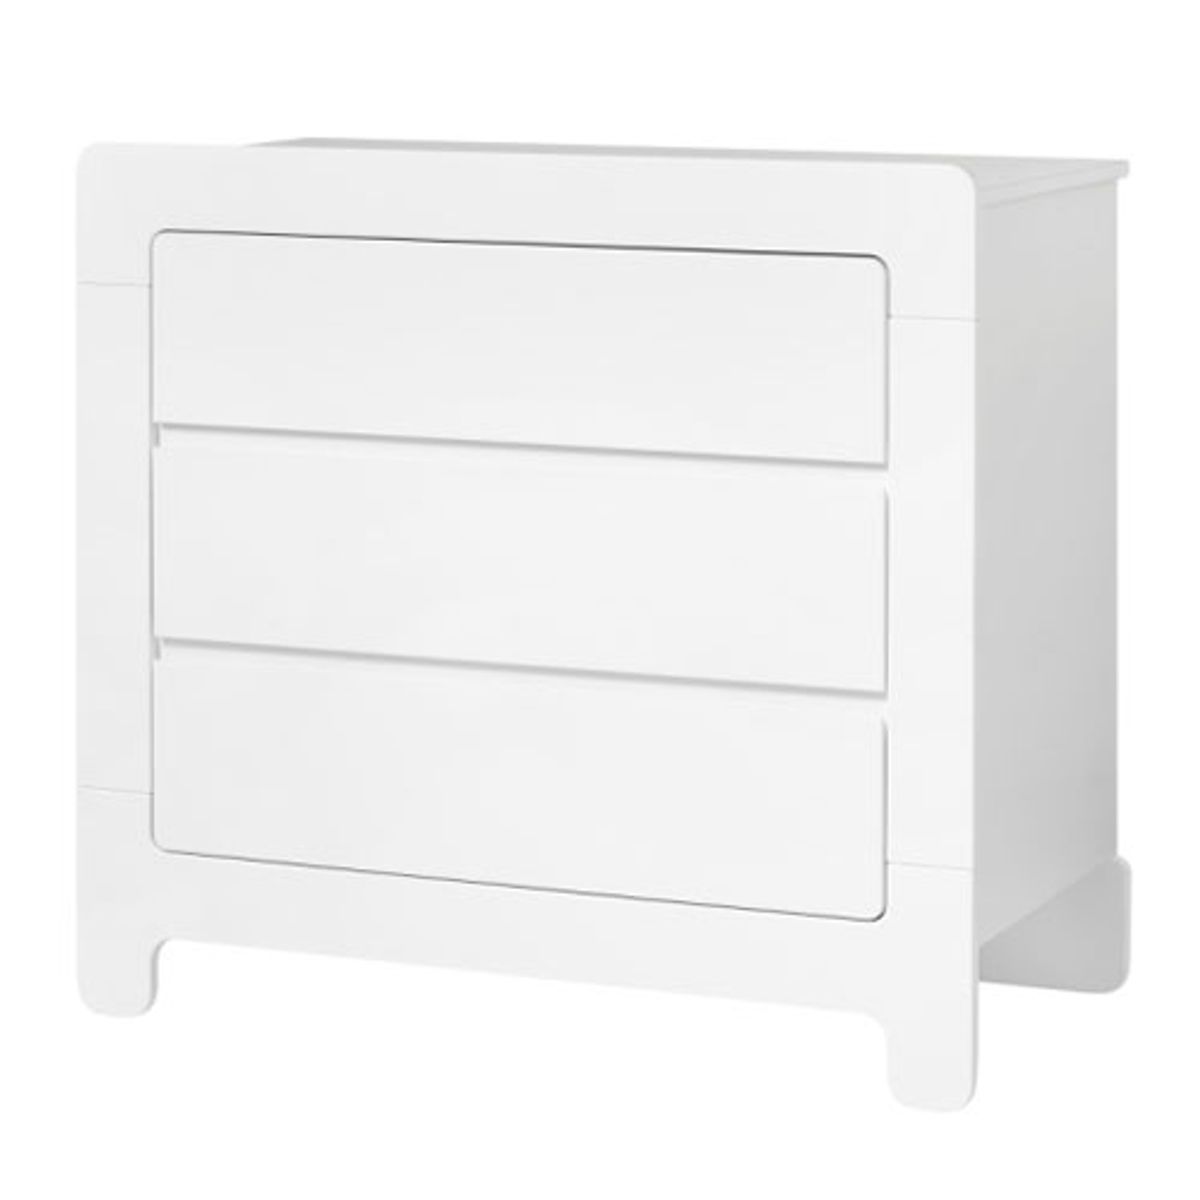 commode en bois blanc 3 tiroirs moon pinio decoclico. Black Bedroom Furniture Sets. Home Design Ideas